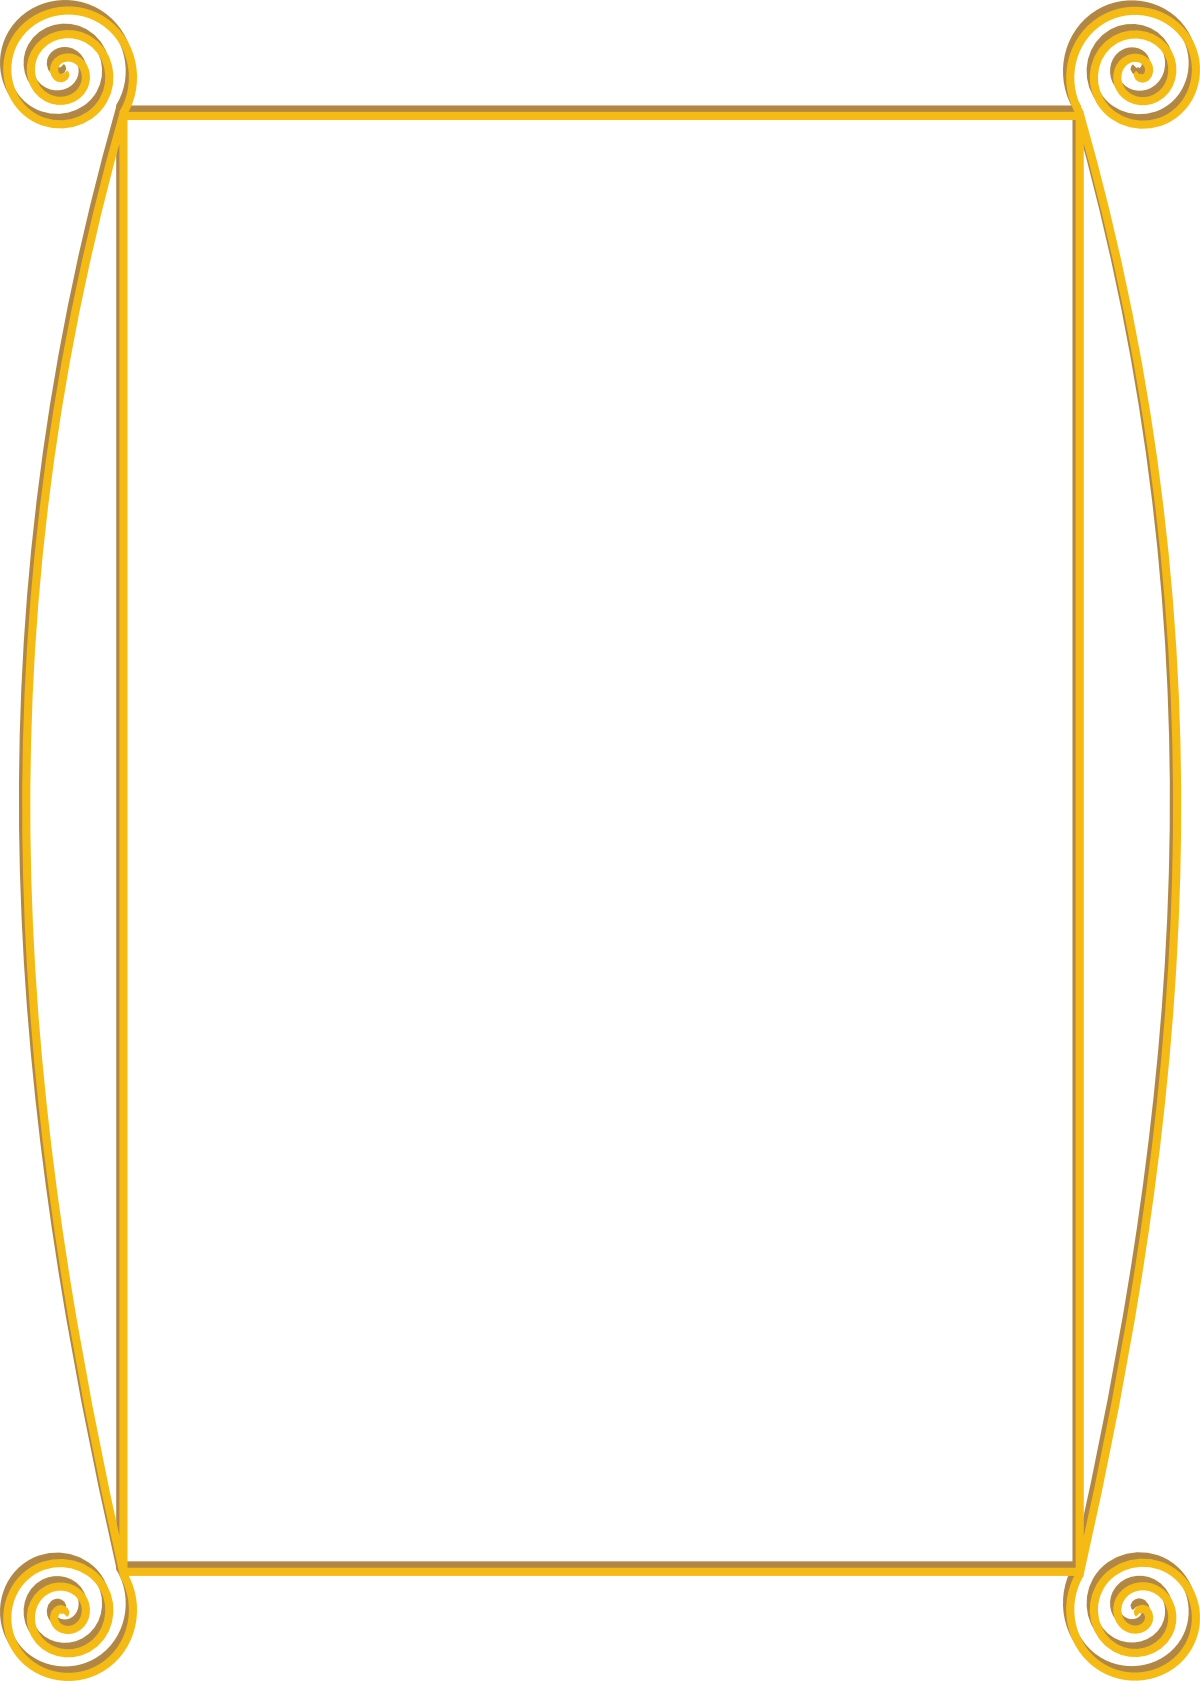 Gold border clipart png freeuse library Free Golden Border Cliparts, Download Free Clip Art, Free Clip Art ... png freeuse library